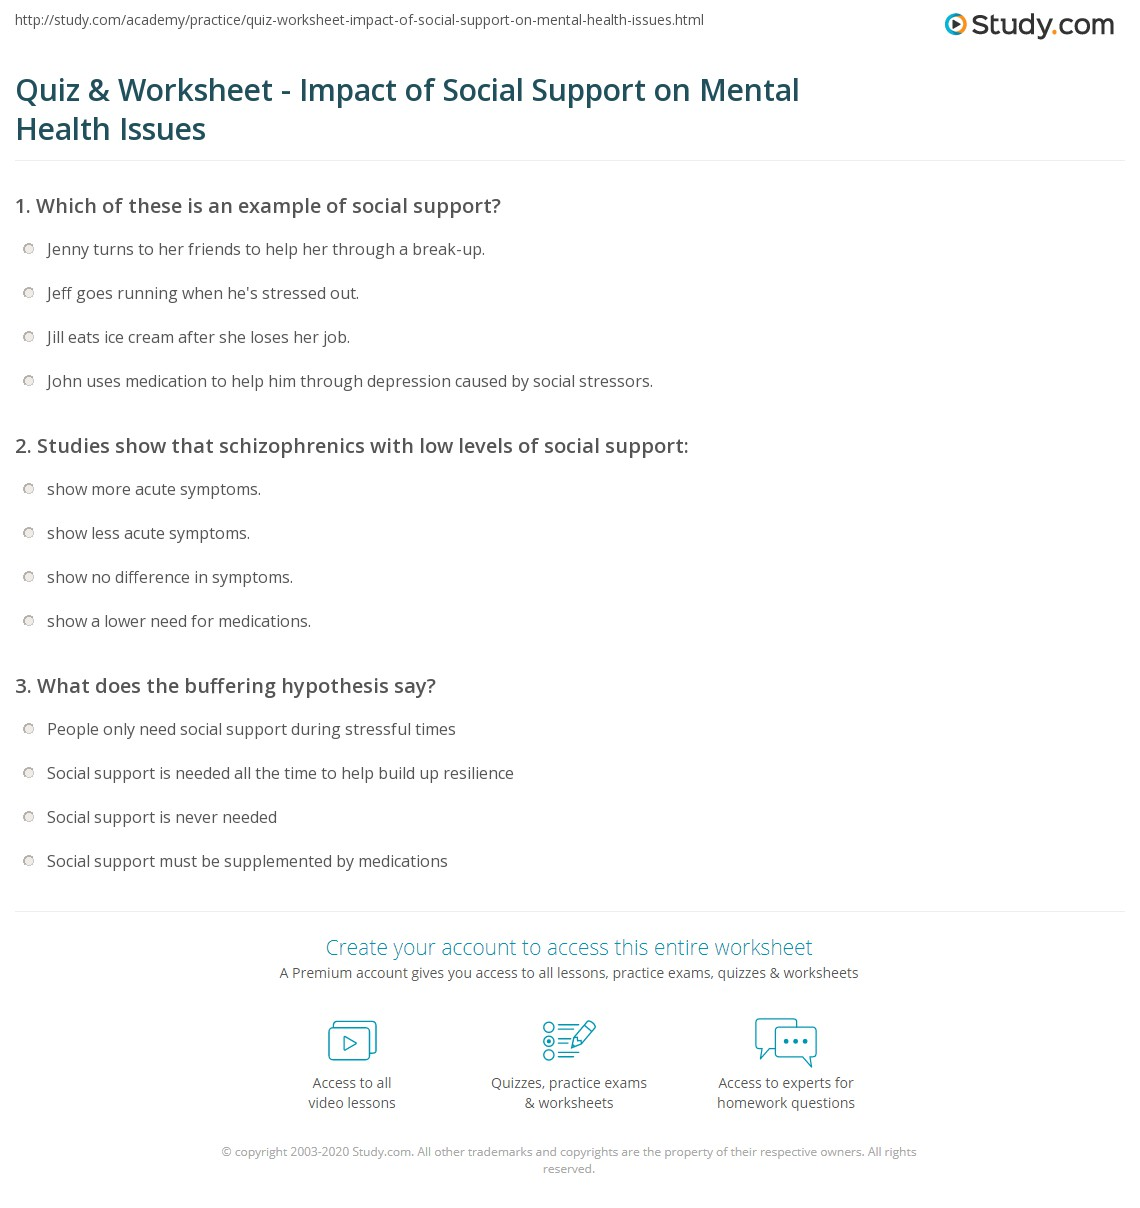 Free Worksheet Indiana Child Support Worksheet support worksheet delibertad quiz impact of social on mental health